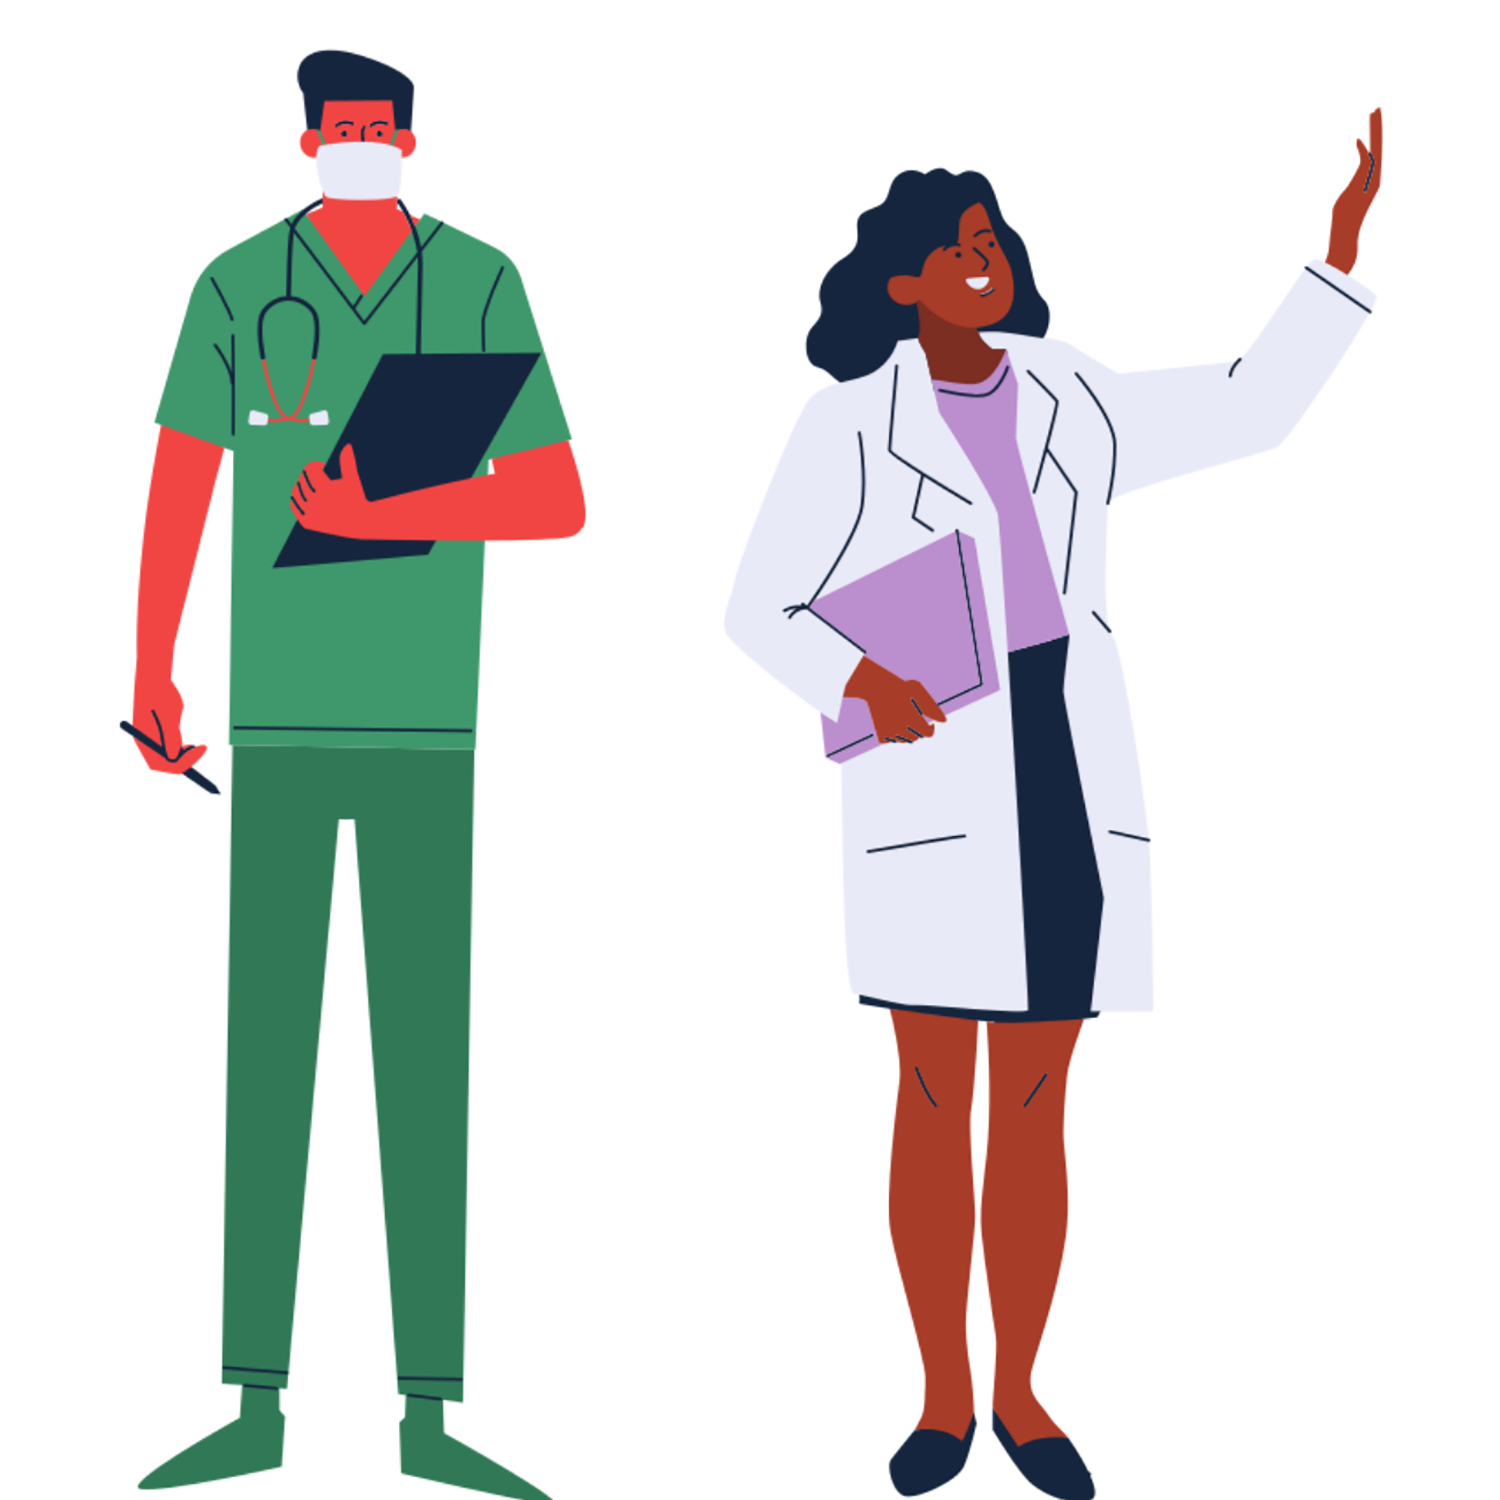 Illustrations of two doctors